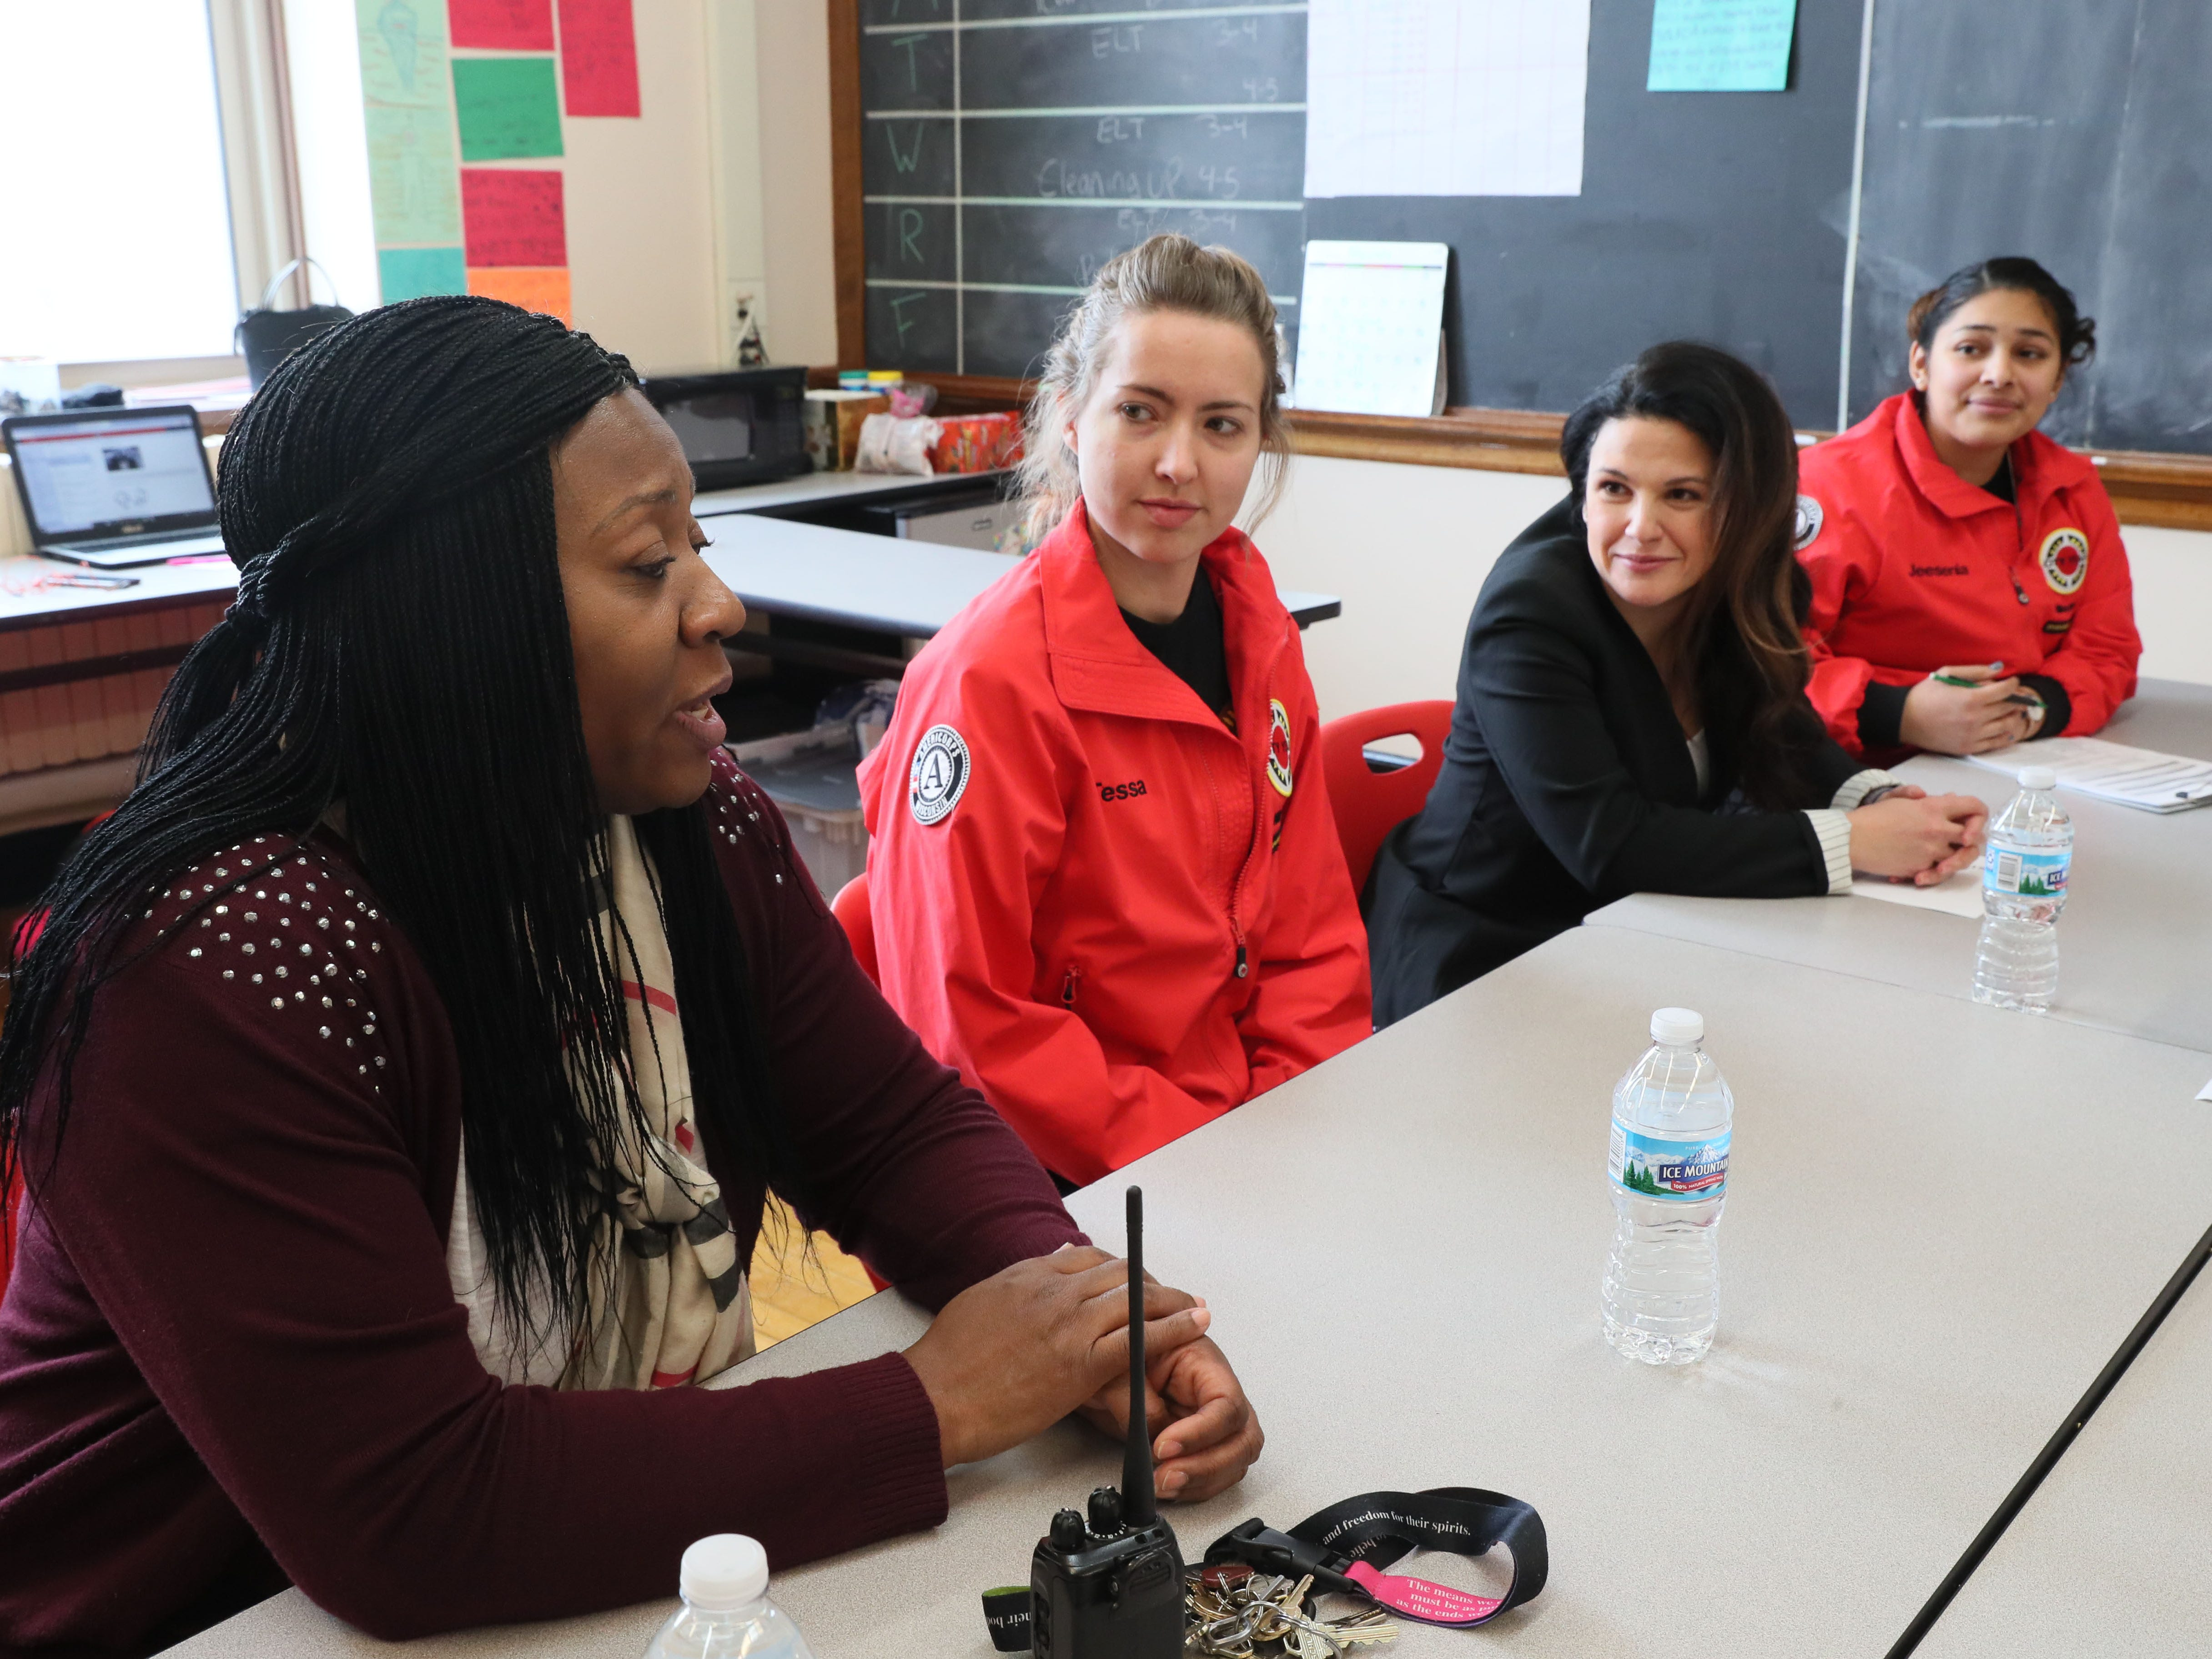 Discussing the City Year program and how it works are (from left) Pulaski Principal Lolita Patrick; Tessa Rhodes, City Year student success coach; Meralis T. Hood, executive director; and Jeesenia Zavala, team leader.